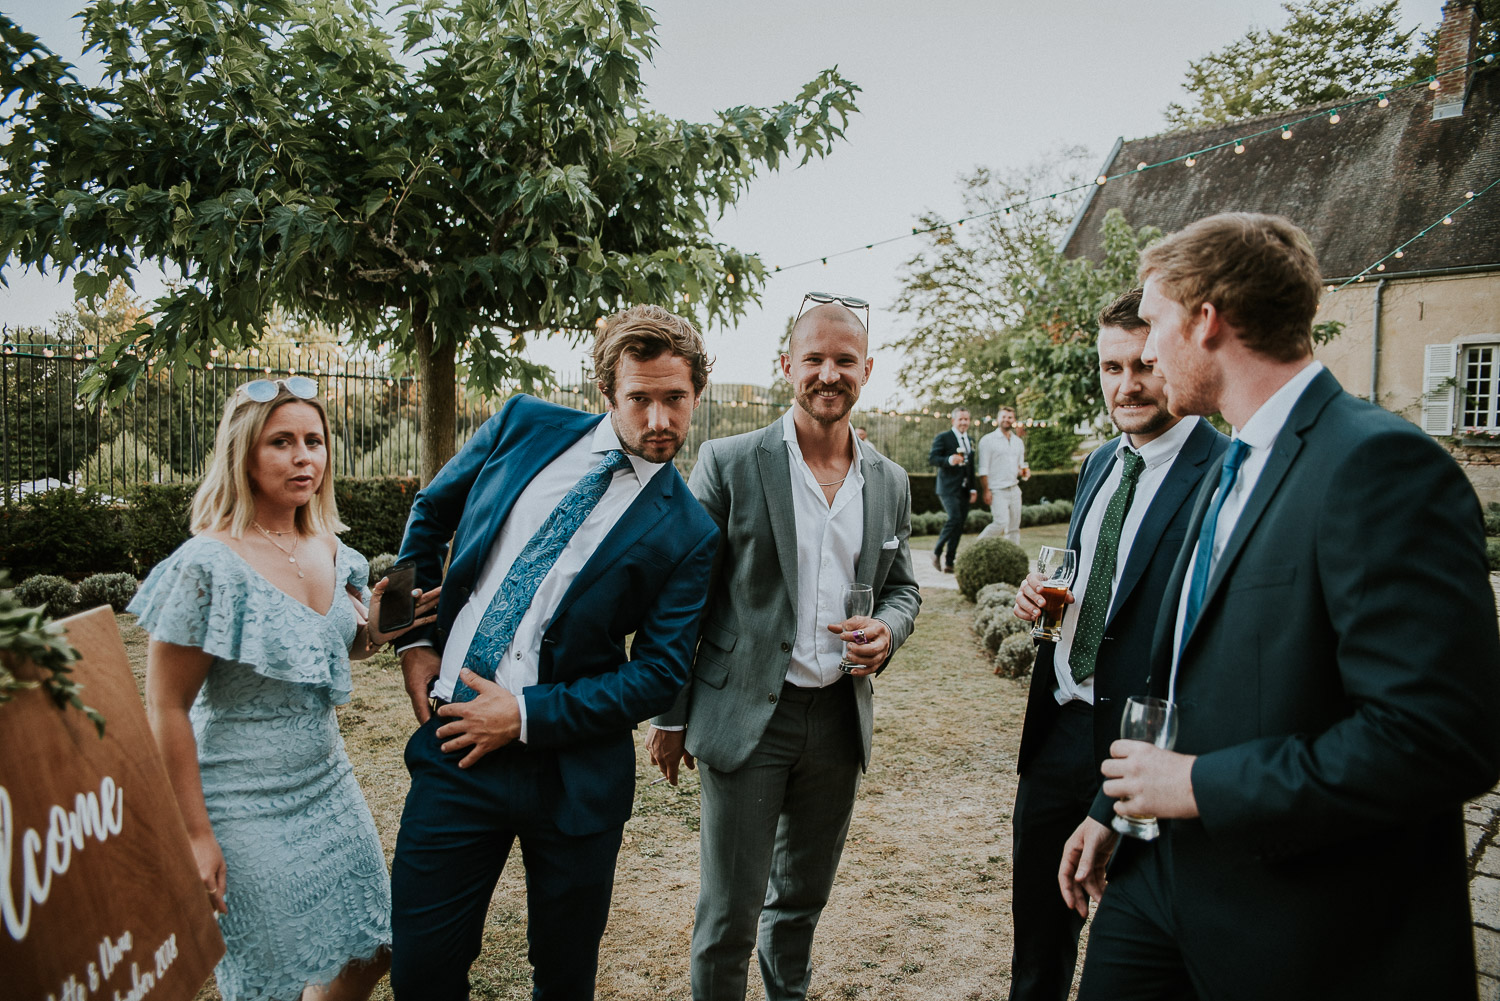 bergerac_wedding_katy_webb_photography_france_UK147